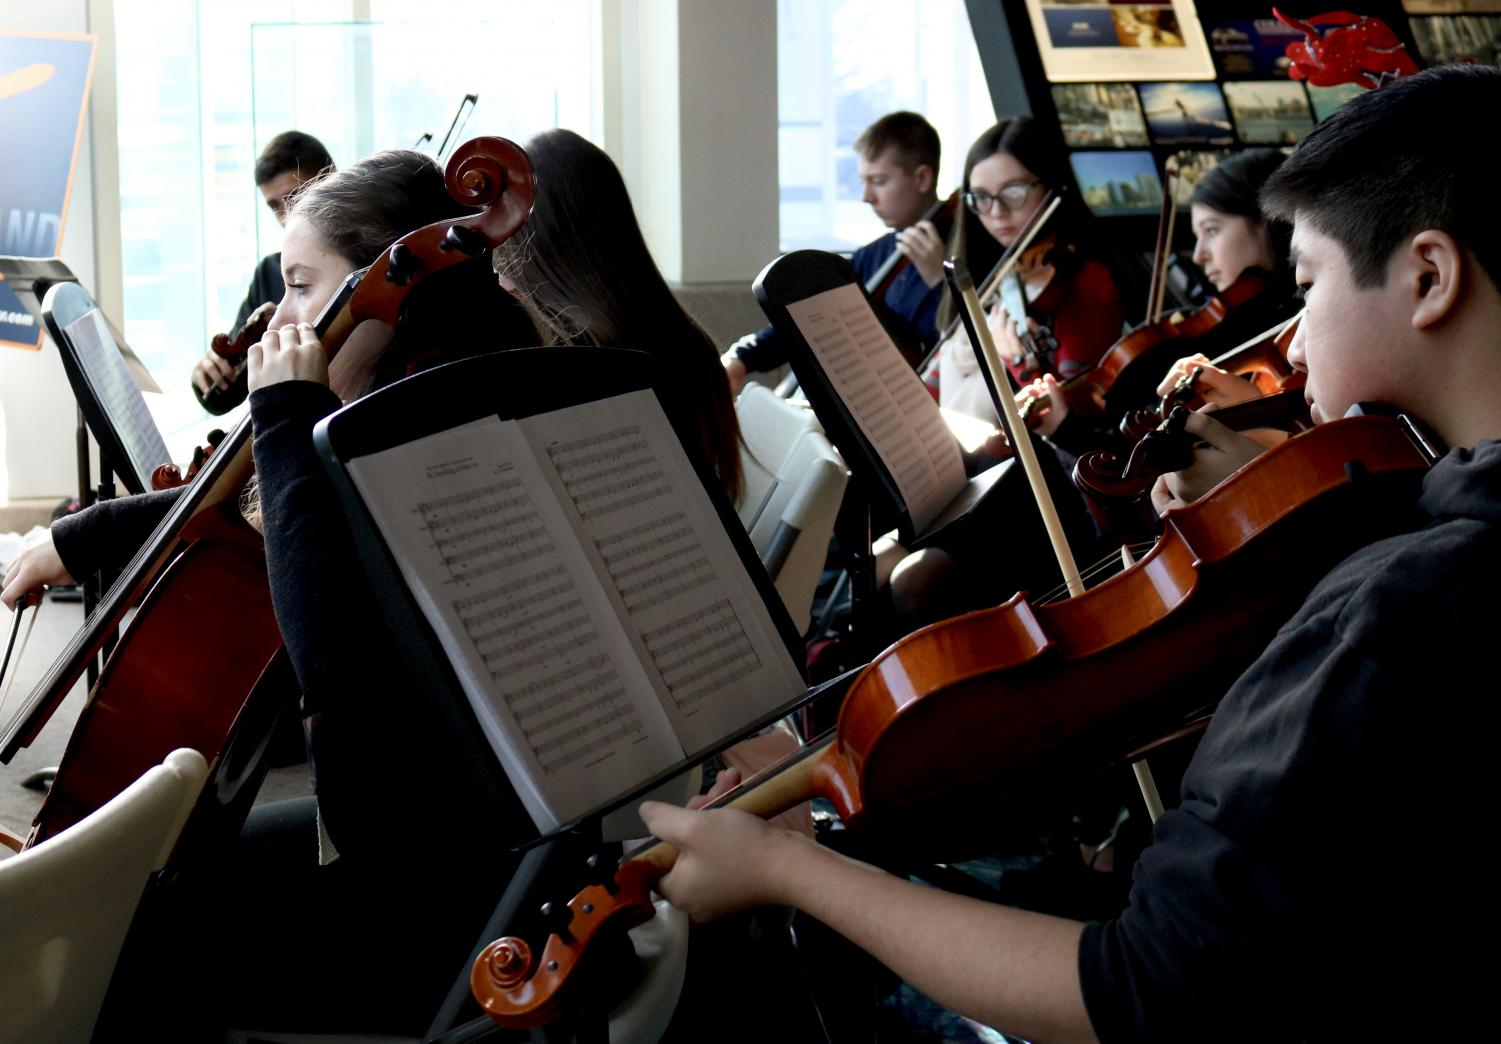 Orchestra students participate in events beyond the traditional school concert. Each year, they perform free for the public at the airport welcoming arrivals to Long Island and serenading waiting passengers to get them in the holiday spirit.